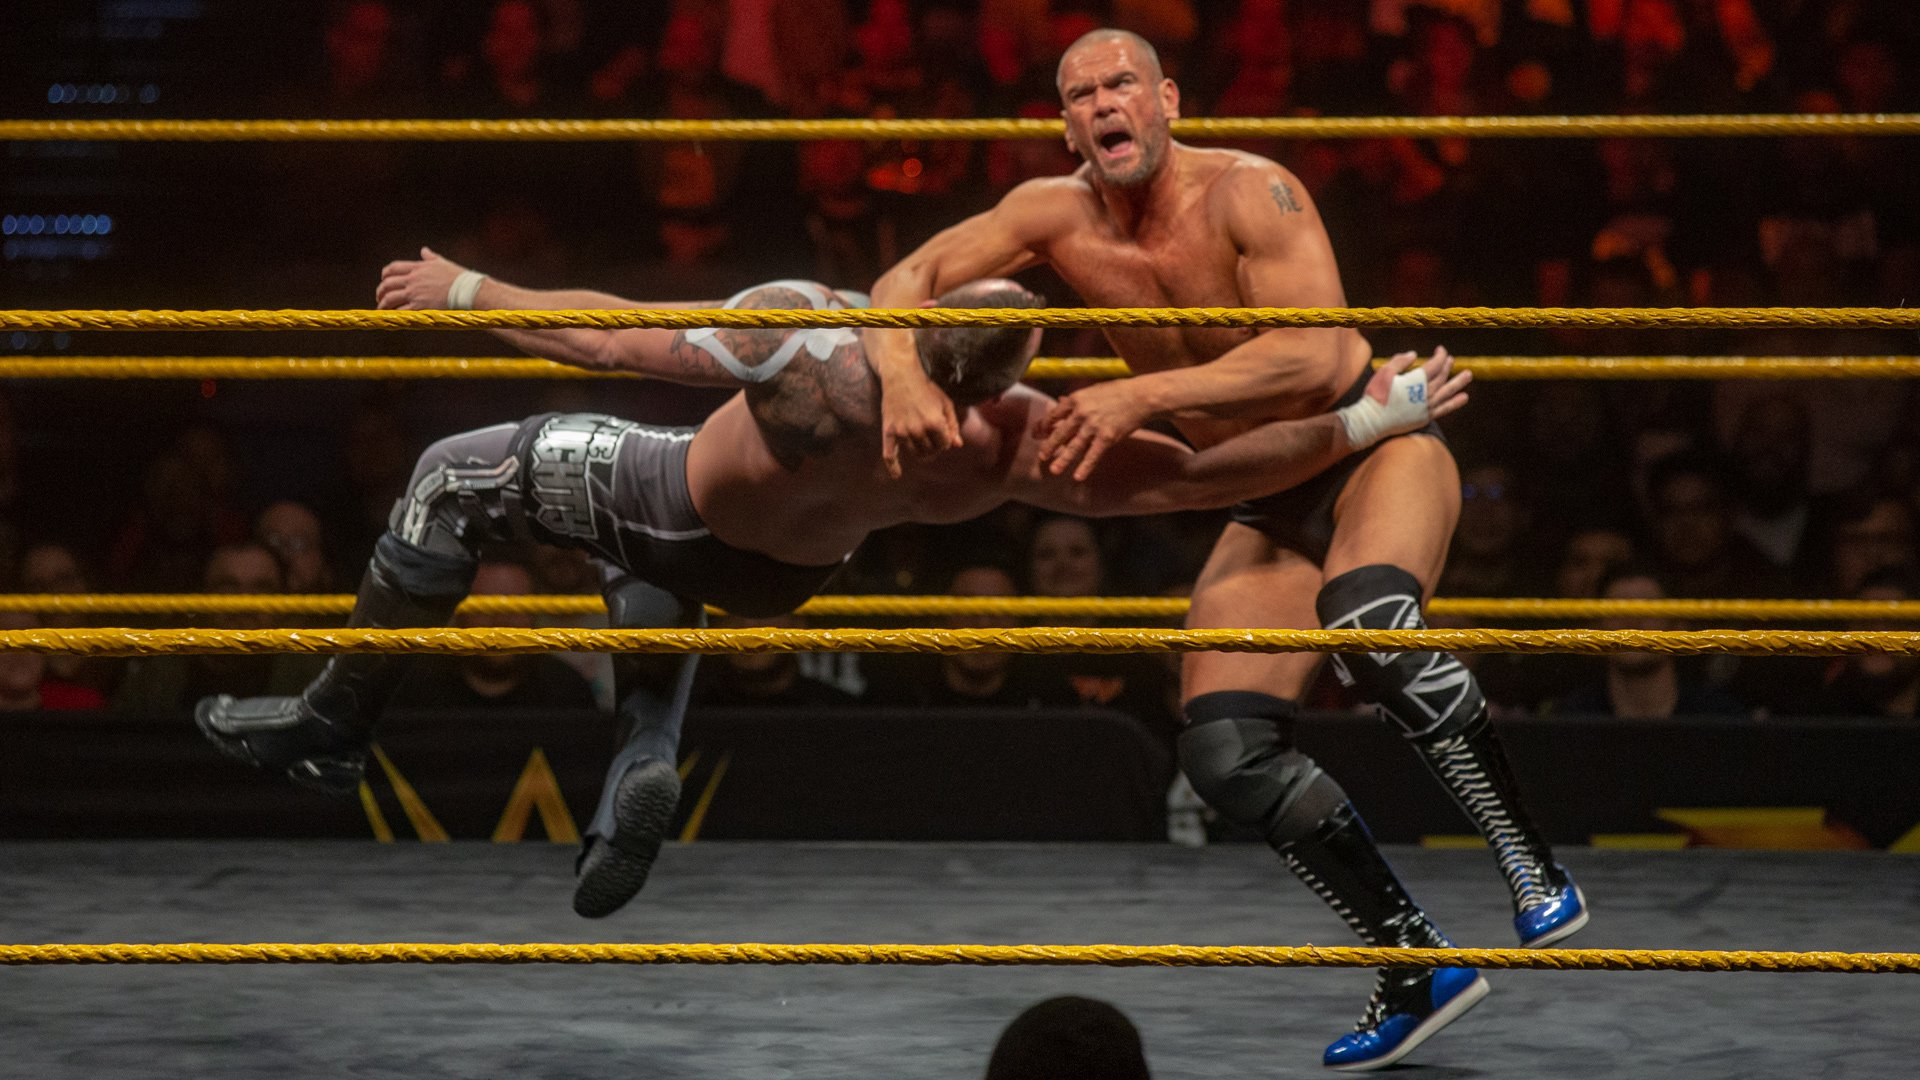 Danny Burch & Oney Lorcan vs. The Mighty: WWE NXT, 28 Novembre 2018